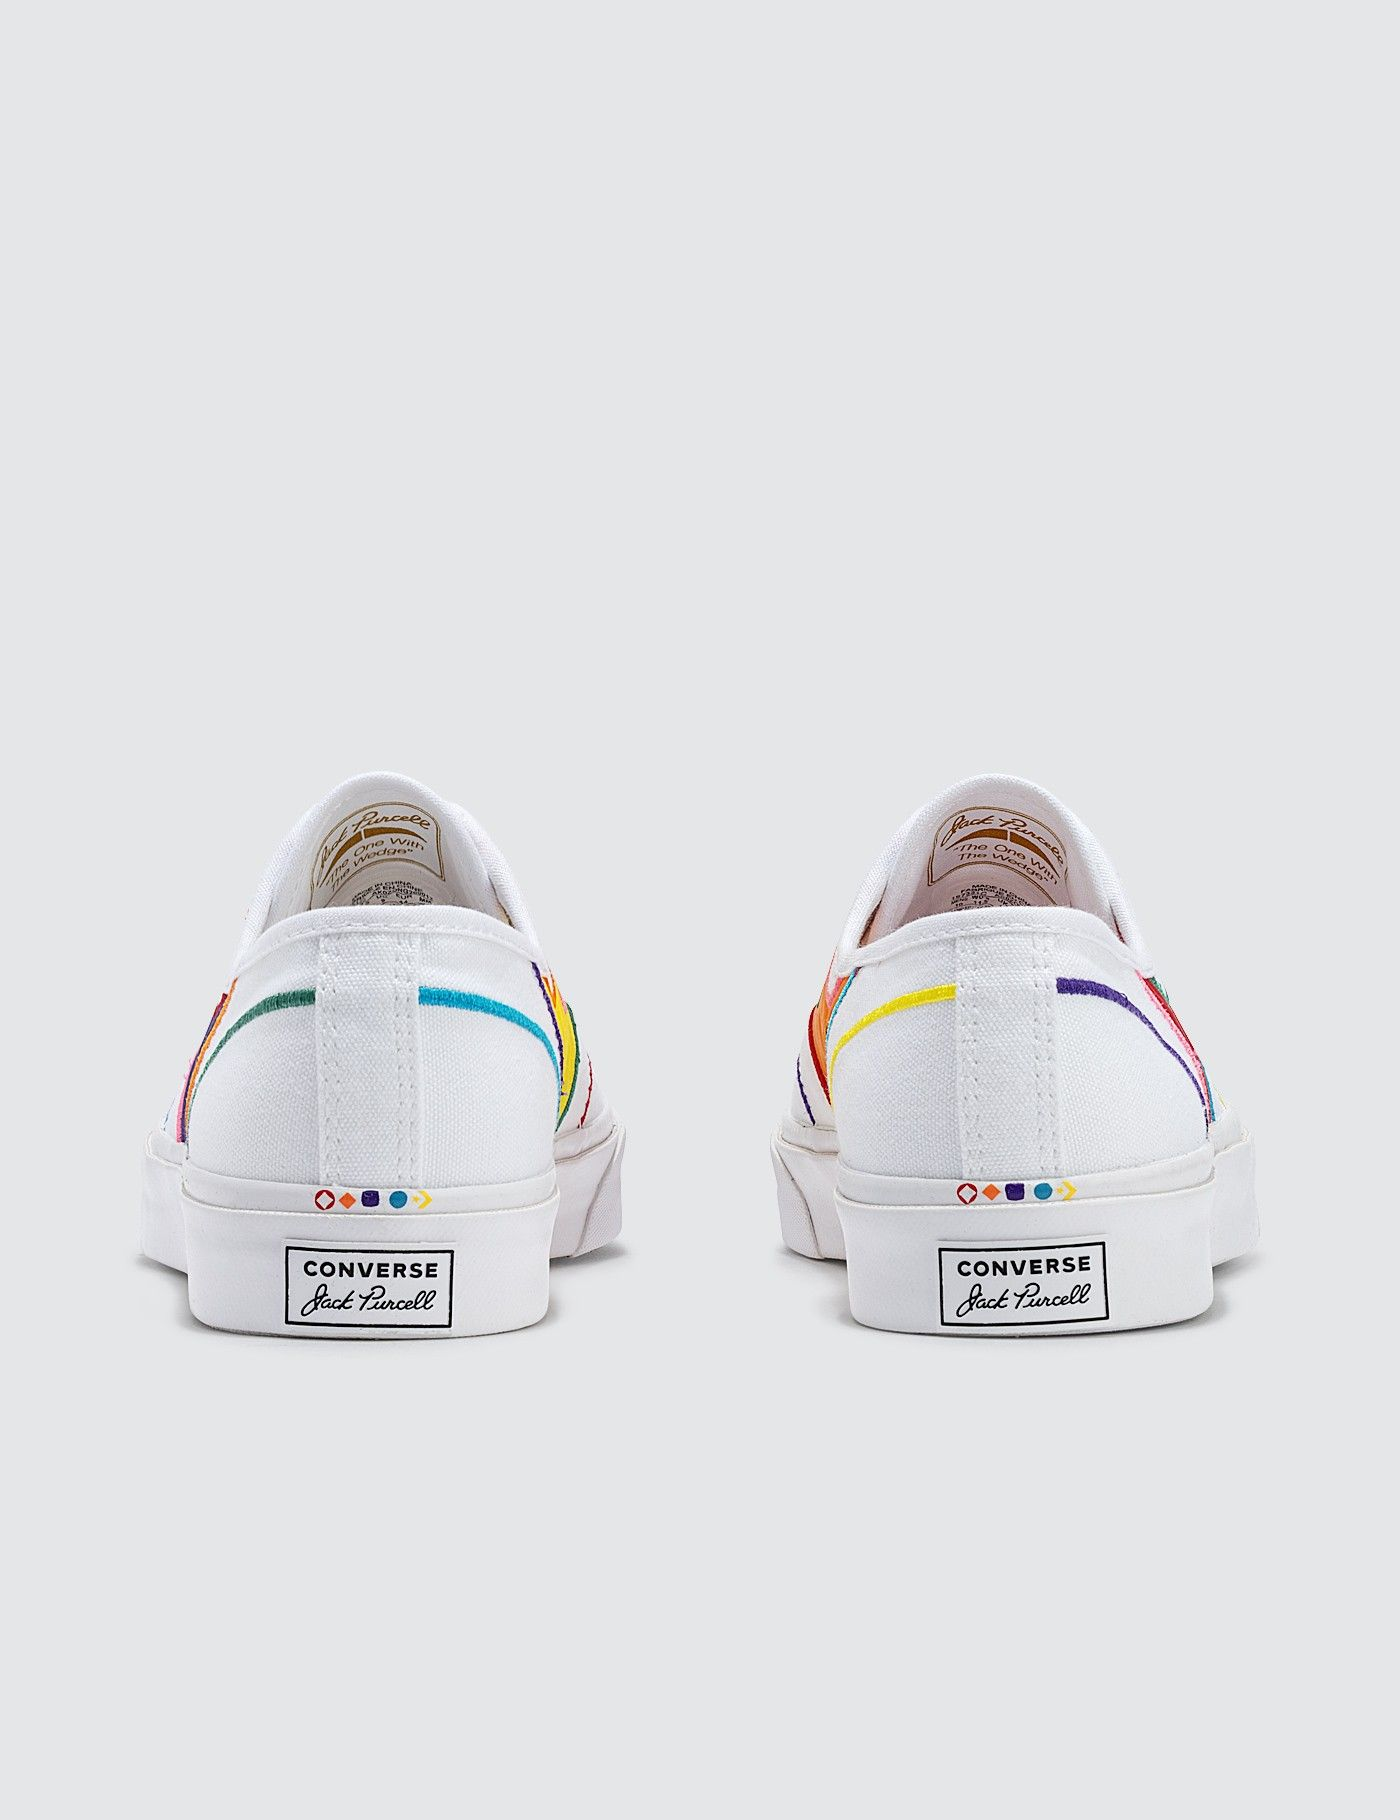 Converse - Jack Purcell OX #Ad , #spon, #spon, #Jack, #Purcell, #OX, #Converse